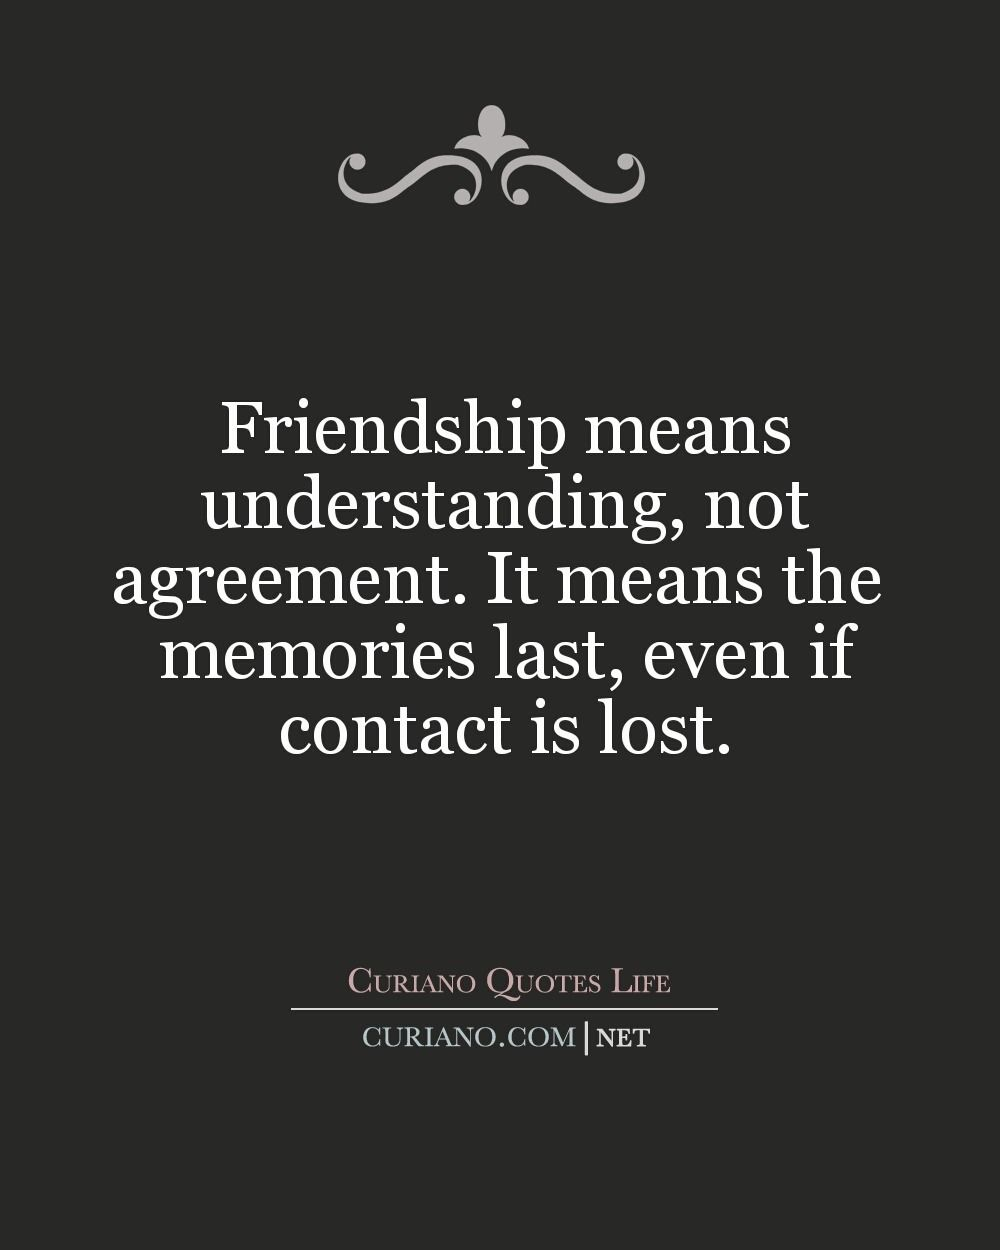 Quotes About Moving On From A Friendship This Blog Curiano Quotes Life Shows Quotes Best Life Quote